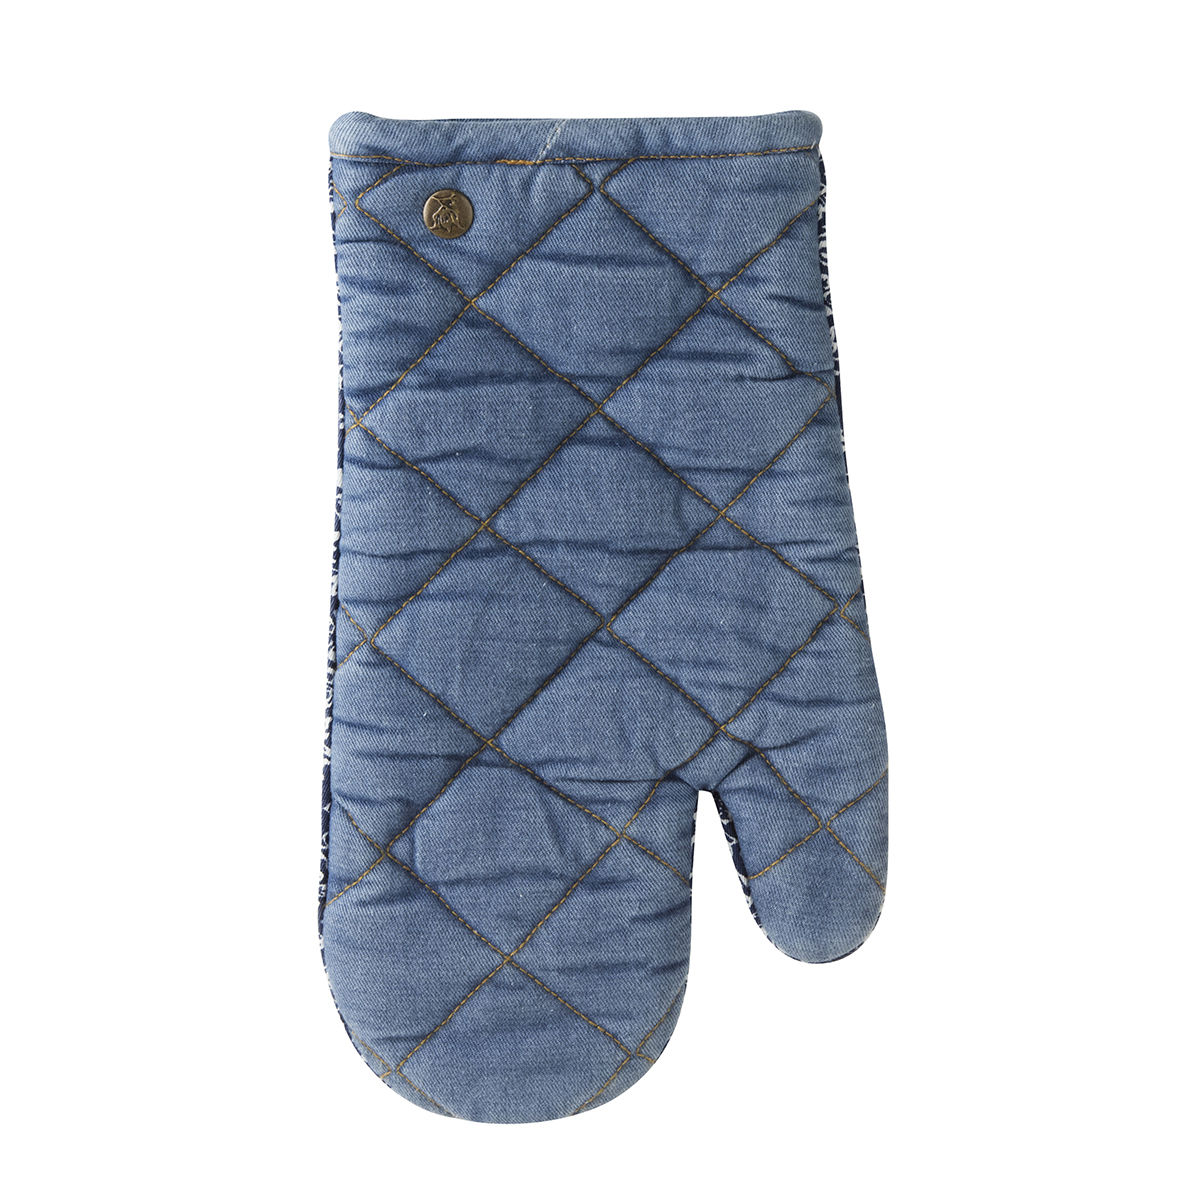 Laura Ashley Oven Mitt - product images  of